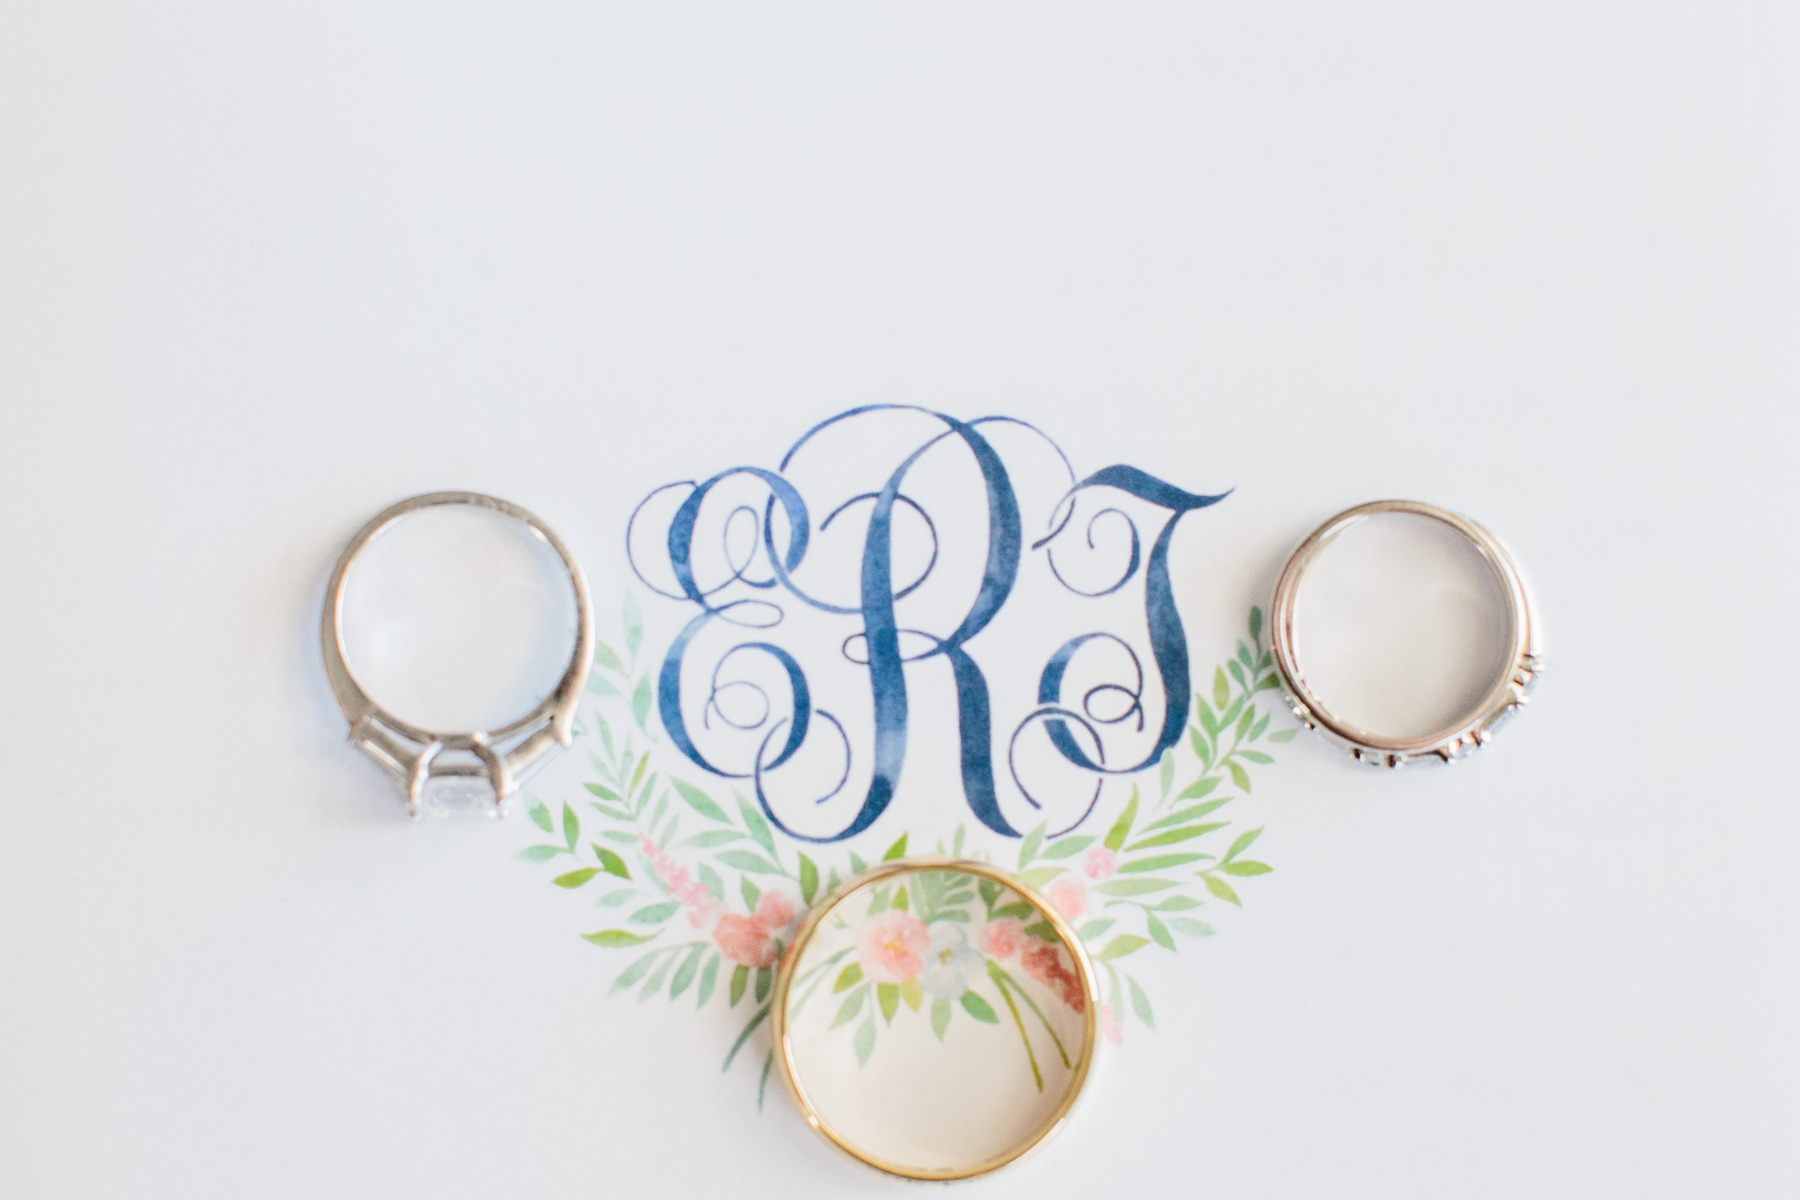 wedding rings with monogram in blue watercolor